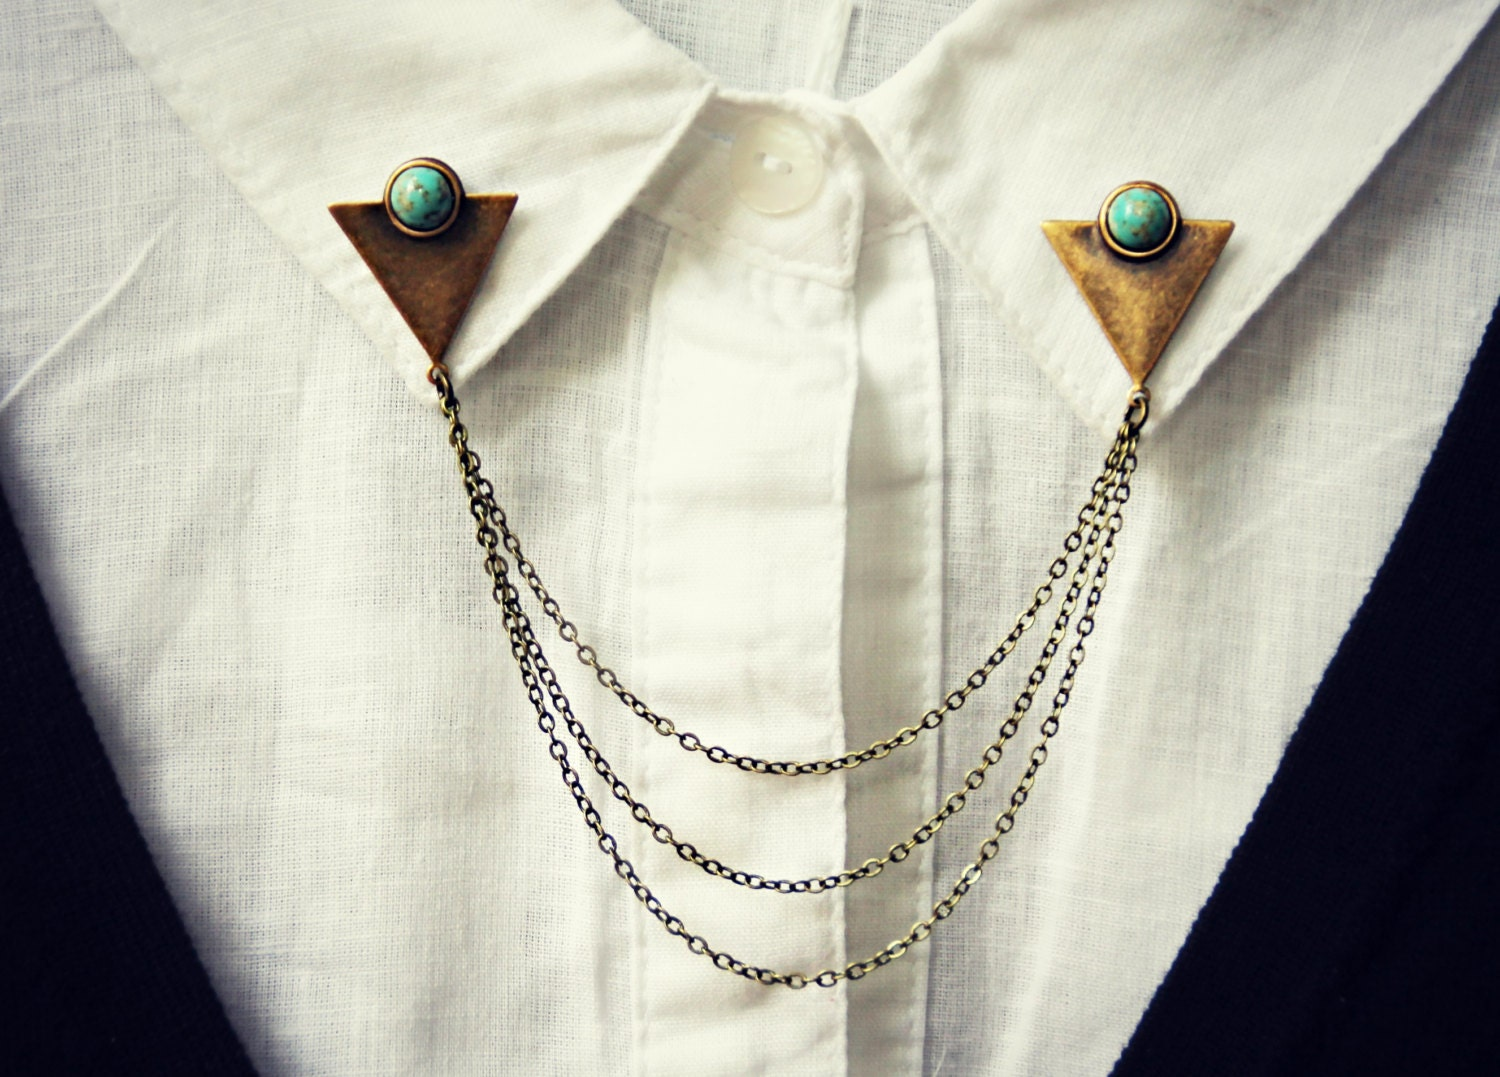 Triangle Collar Pins With Turquoise Stones Collar Chain. Polymer Clay Stud Earrings. Incredible Engagement Rings. Green Jade Bracelet. Sand Bracelet. Box Necklace. Fluorite Engagement Rings. Heart Disease Bracelet. Moissanite Emerald